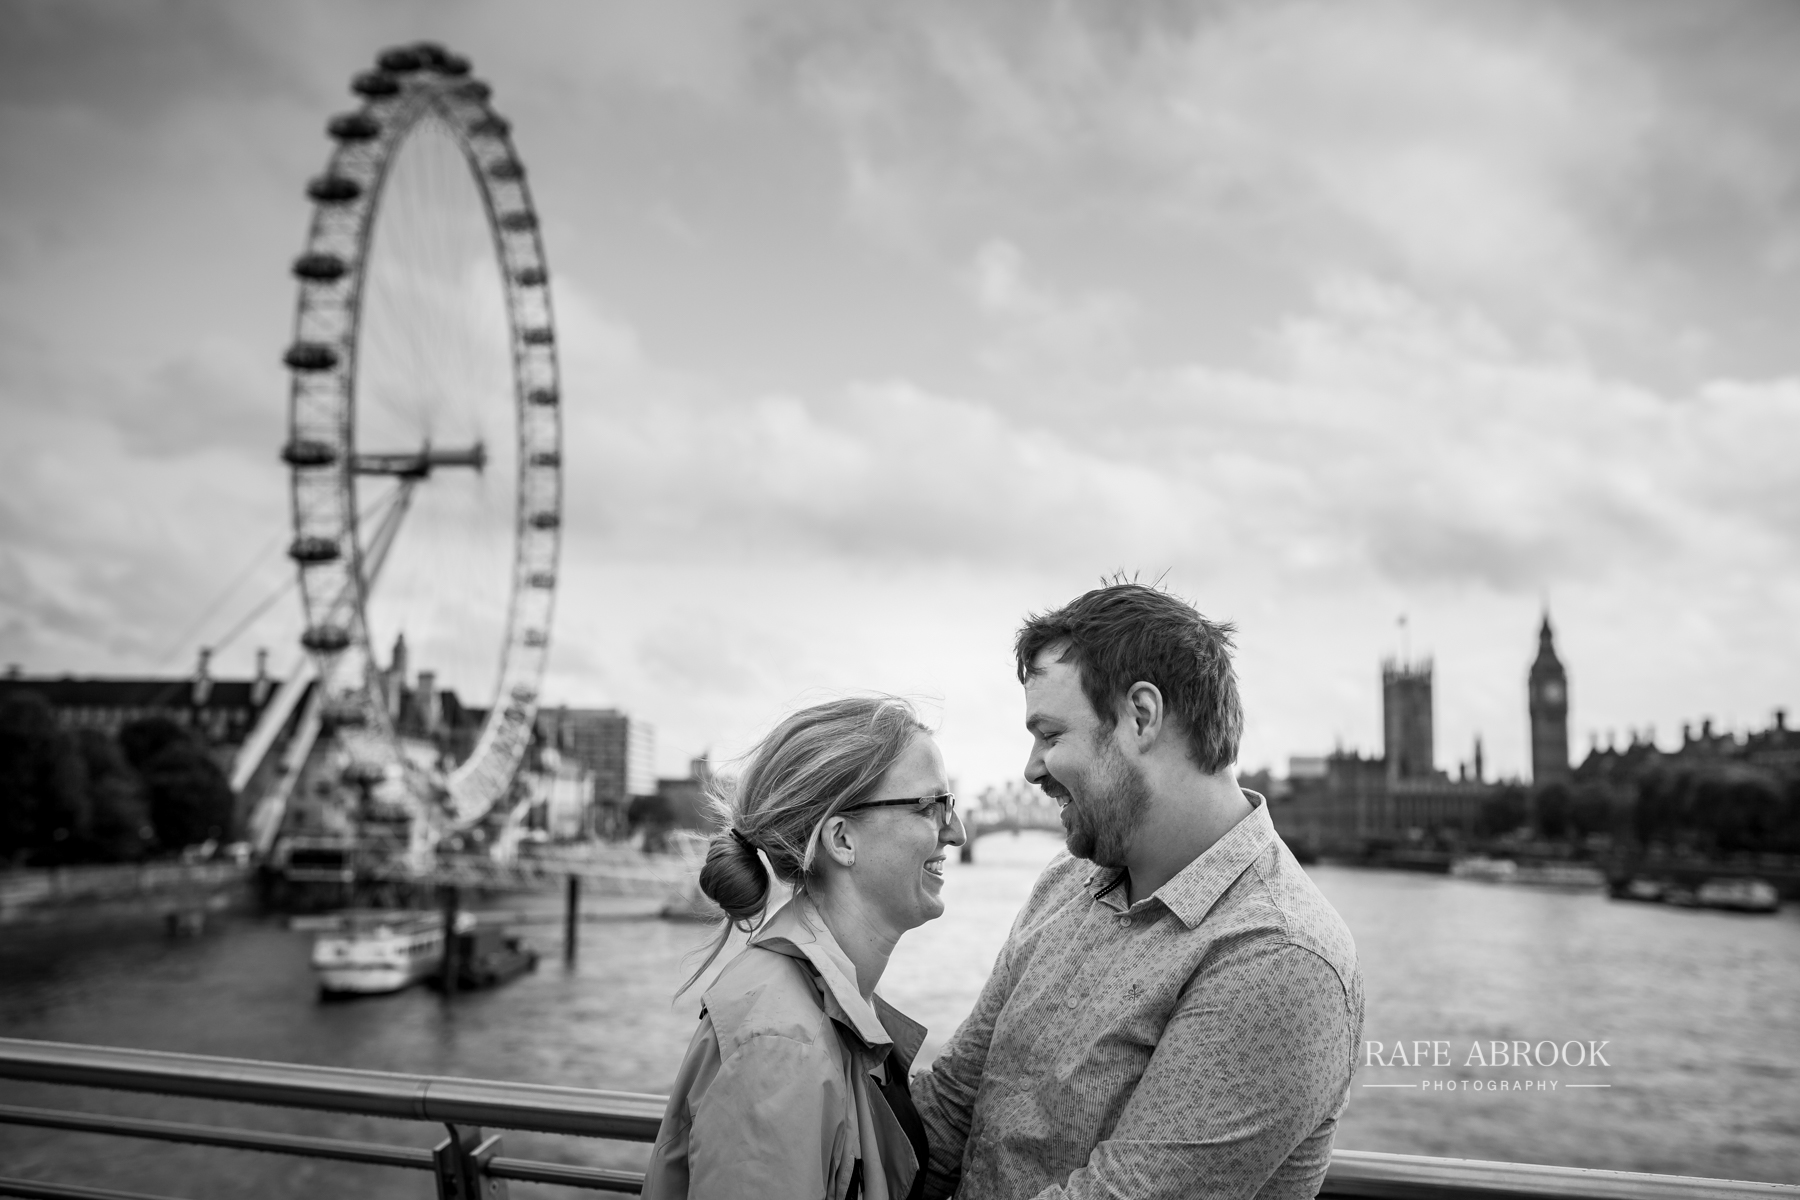 wedding photographer hertfordshire rafe abrook photography london city southbank engagement shoot-1025.jpg